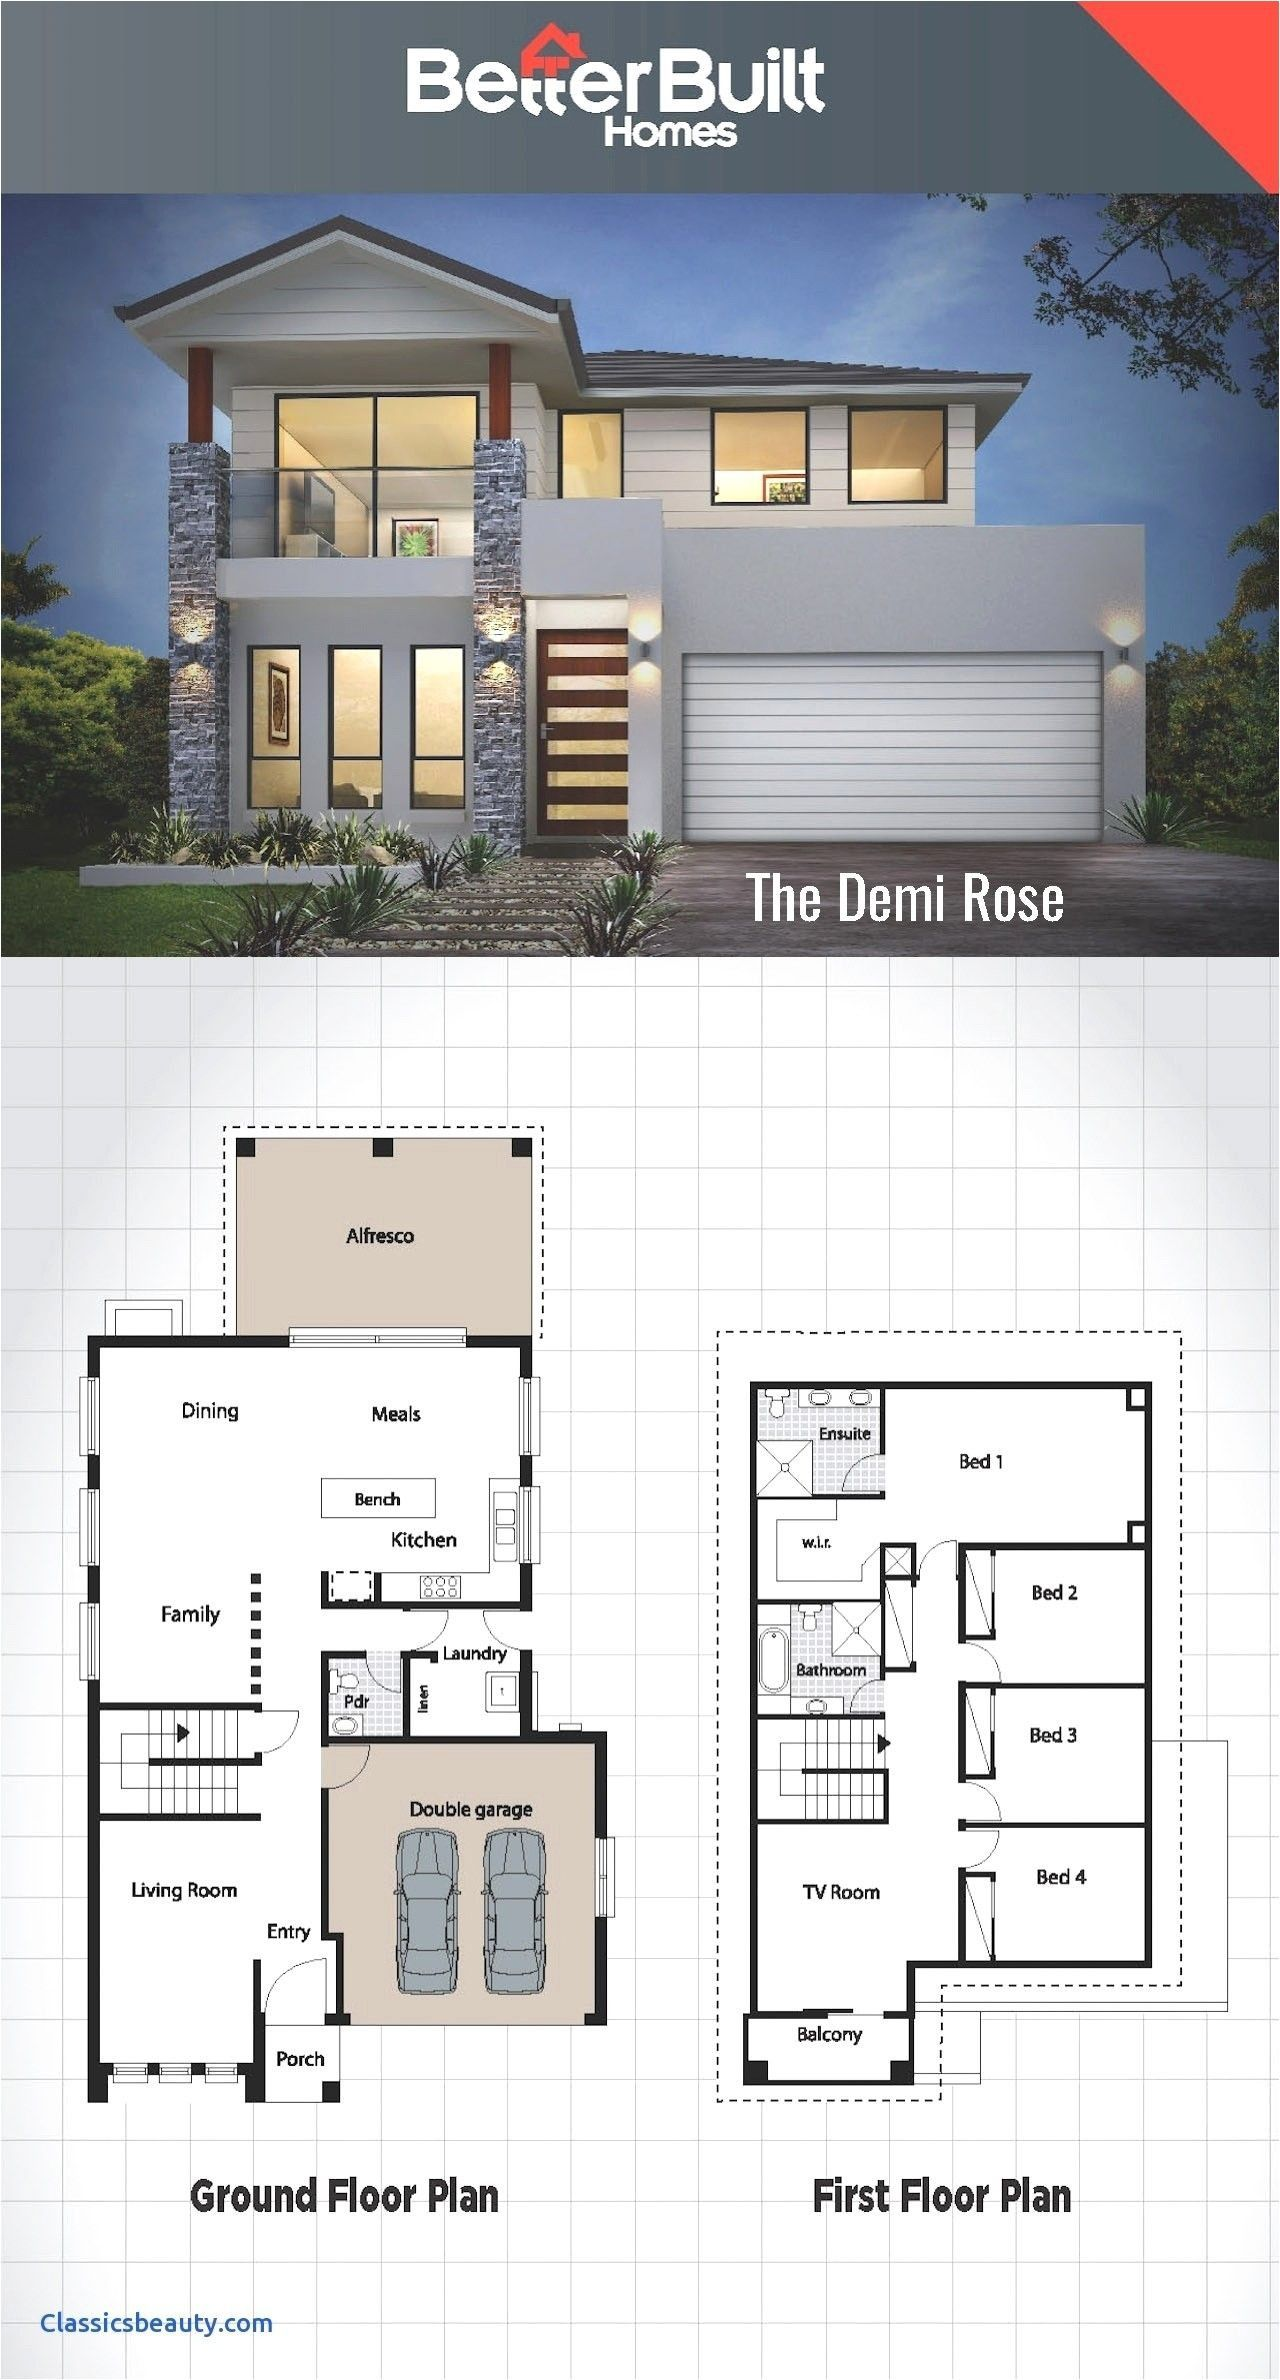 Best Of House Design Plans Modern House Plans Under 200k To Build Philippines In 2020 Modern House Floor Plans House Blueprints Modern Farmhouse Plans